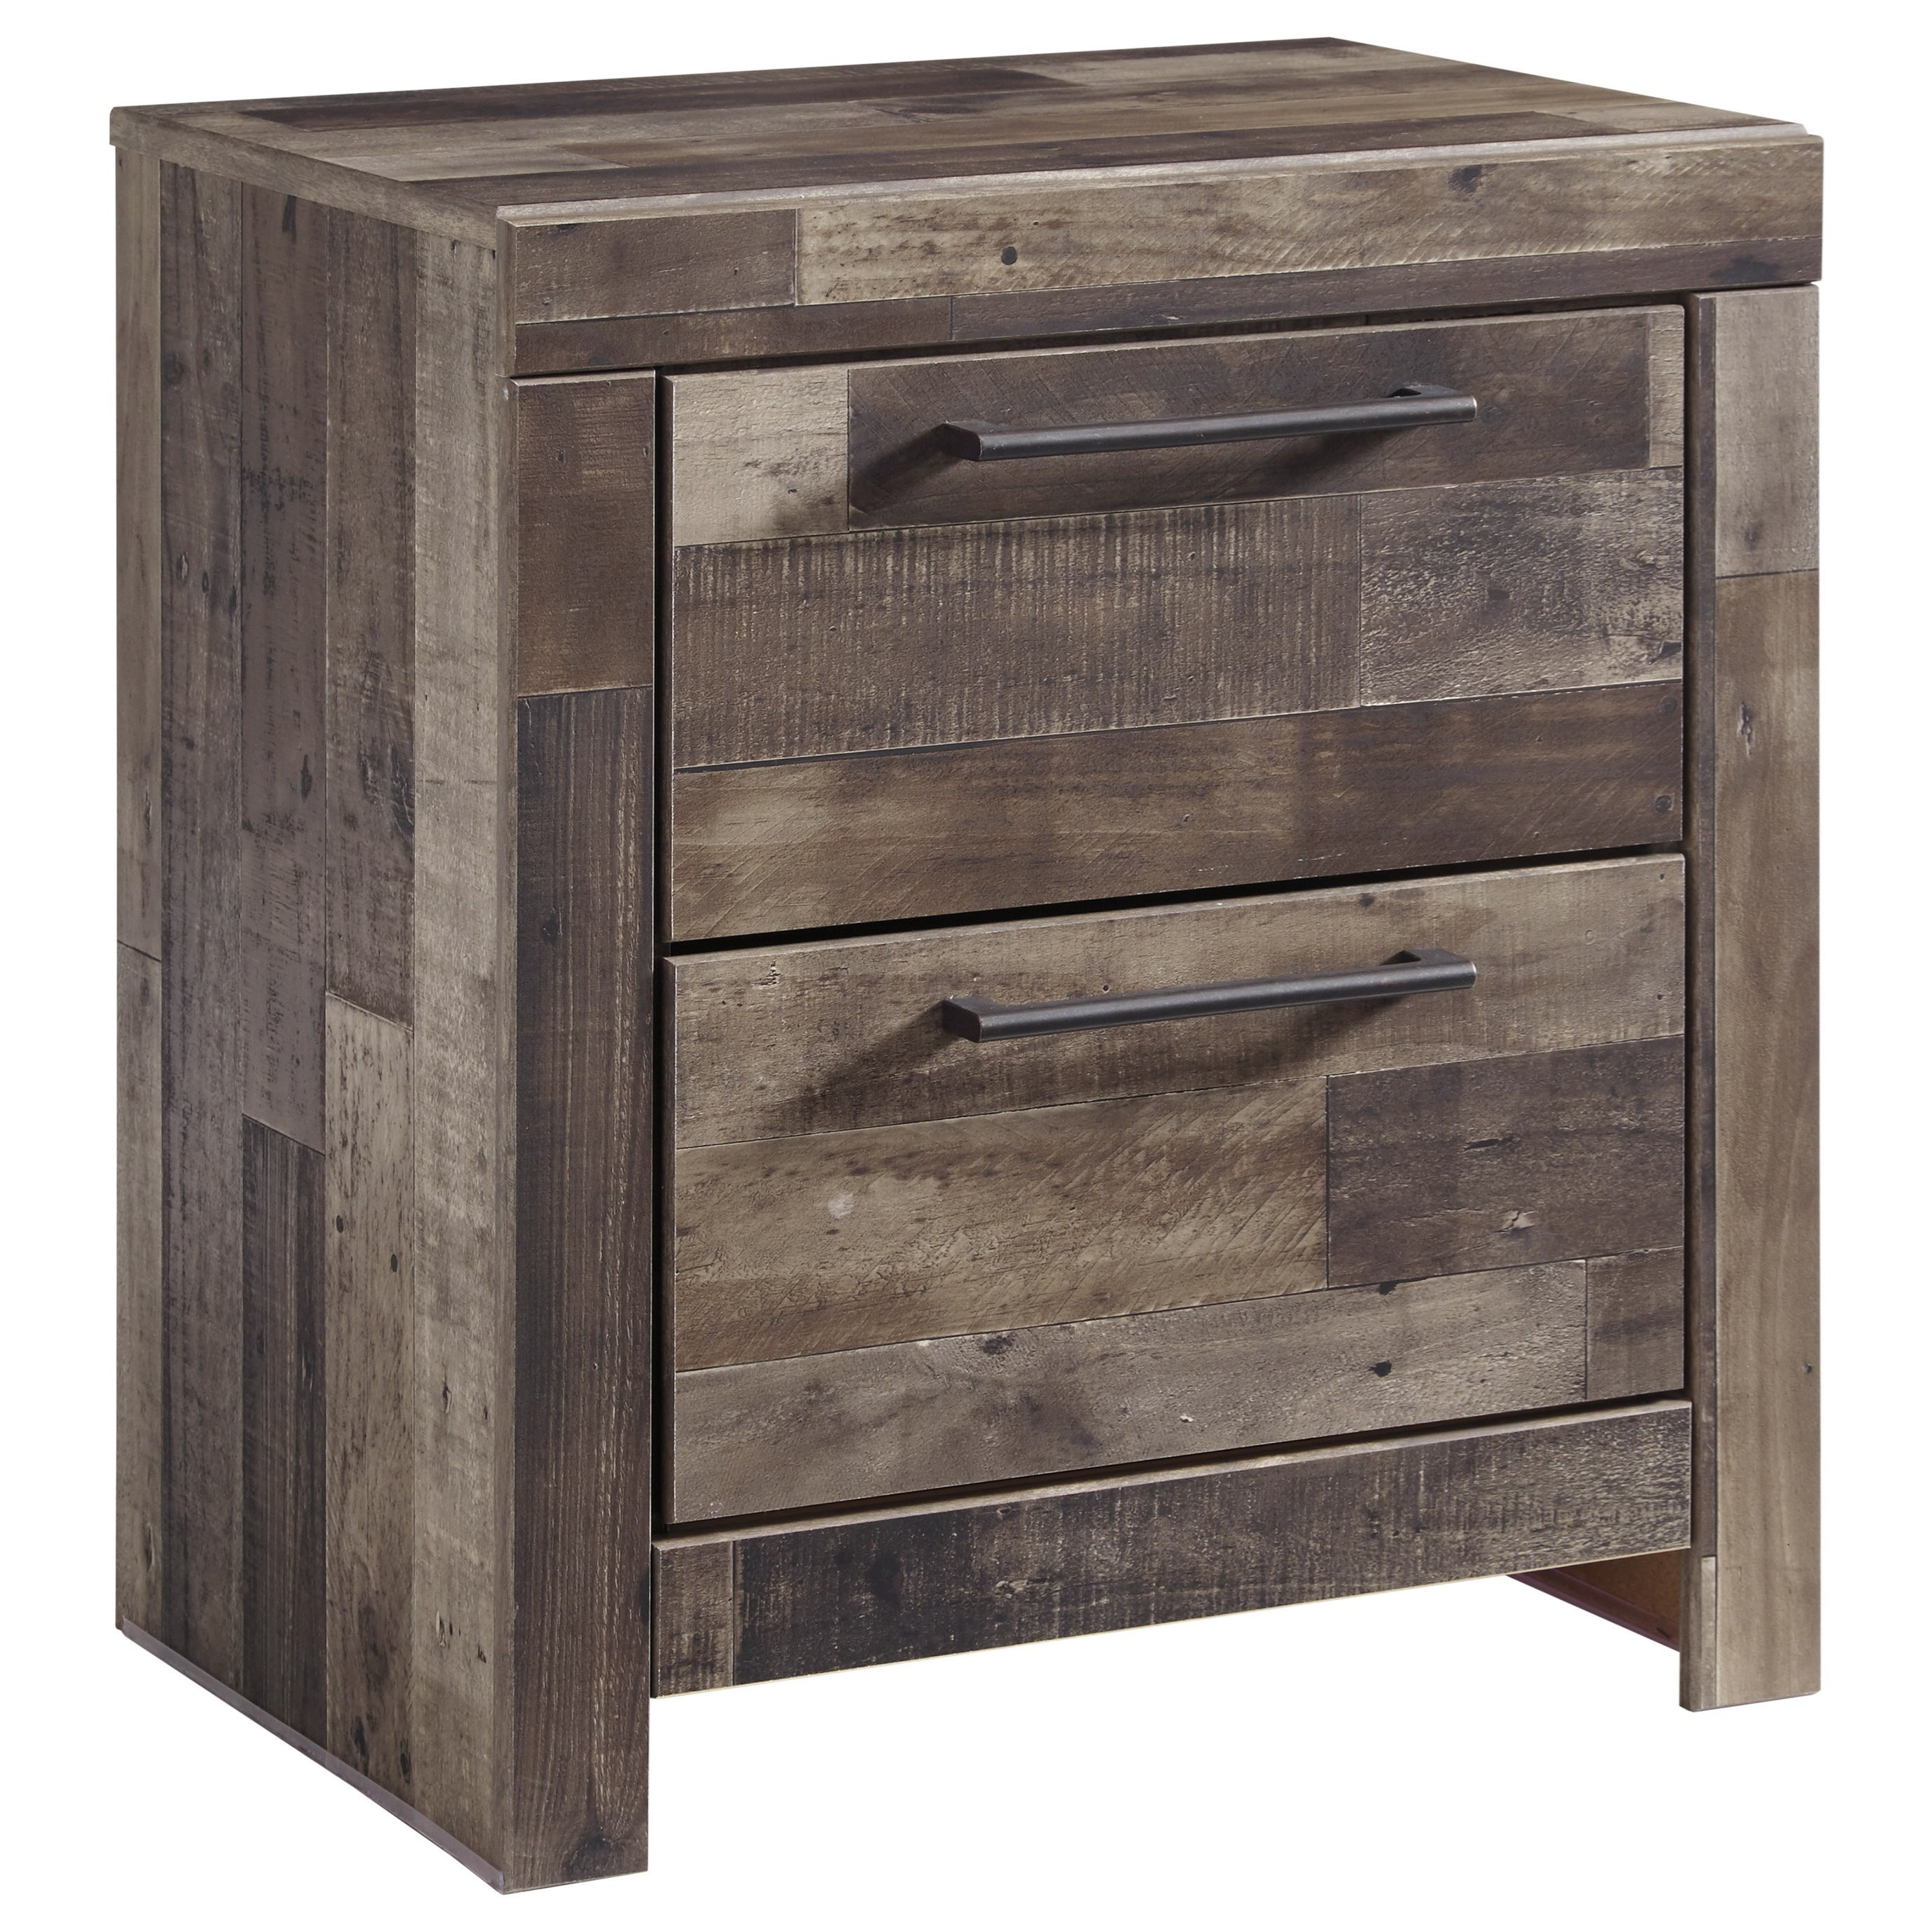 Downwater 2-Drawer Nightstand by Trendz at Ruby Gordon Home